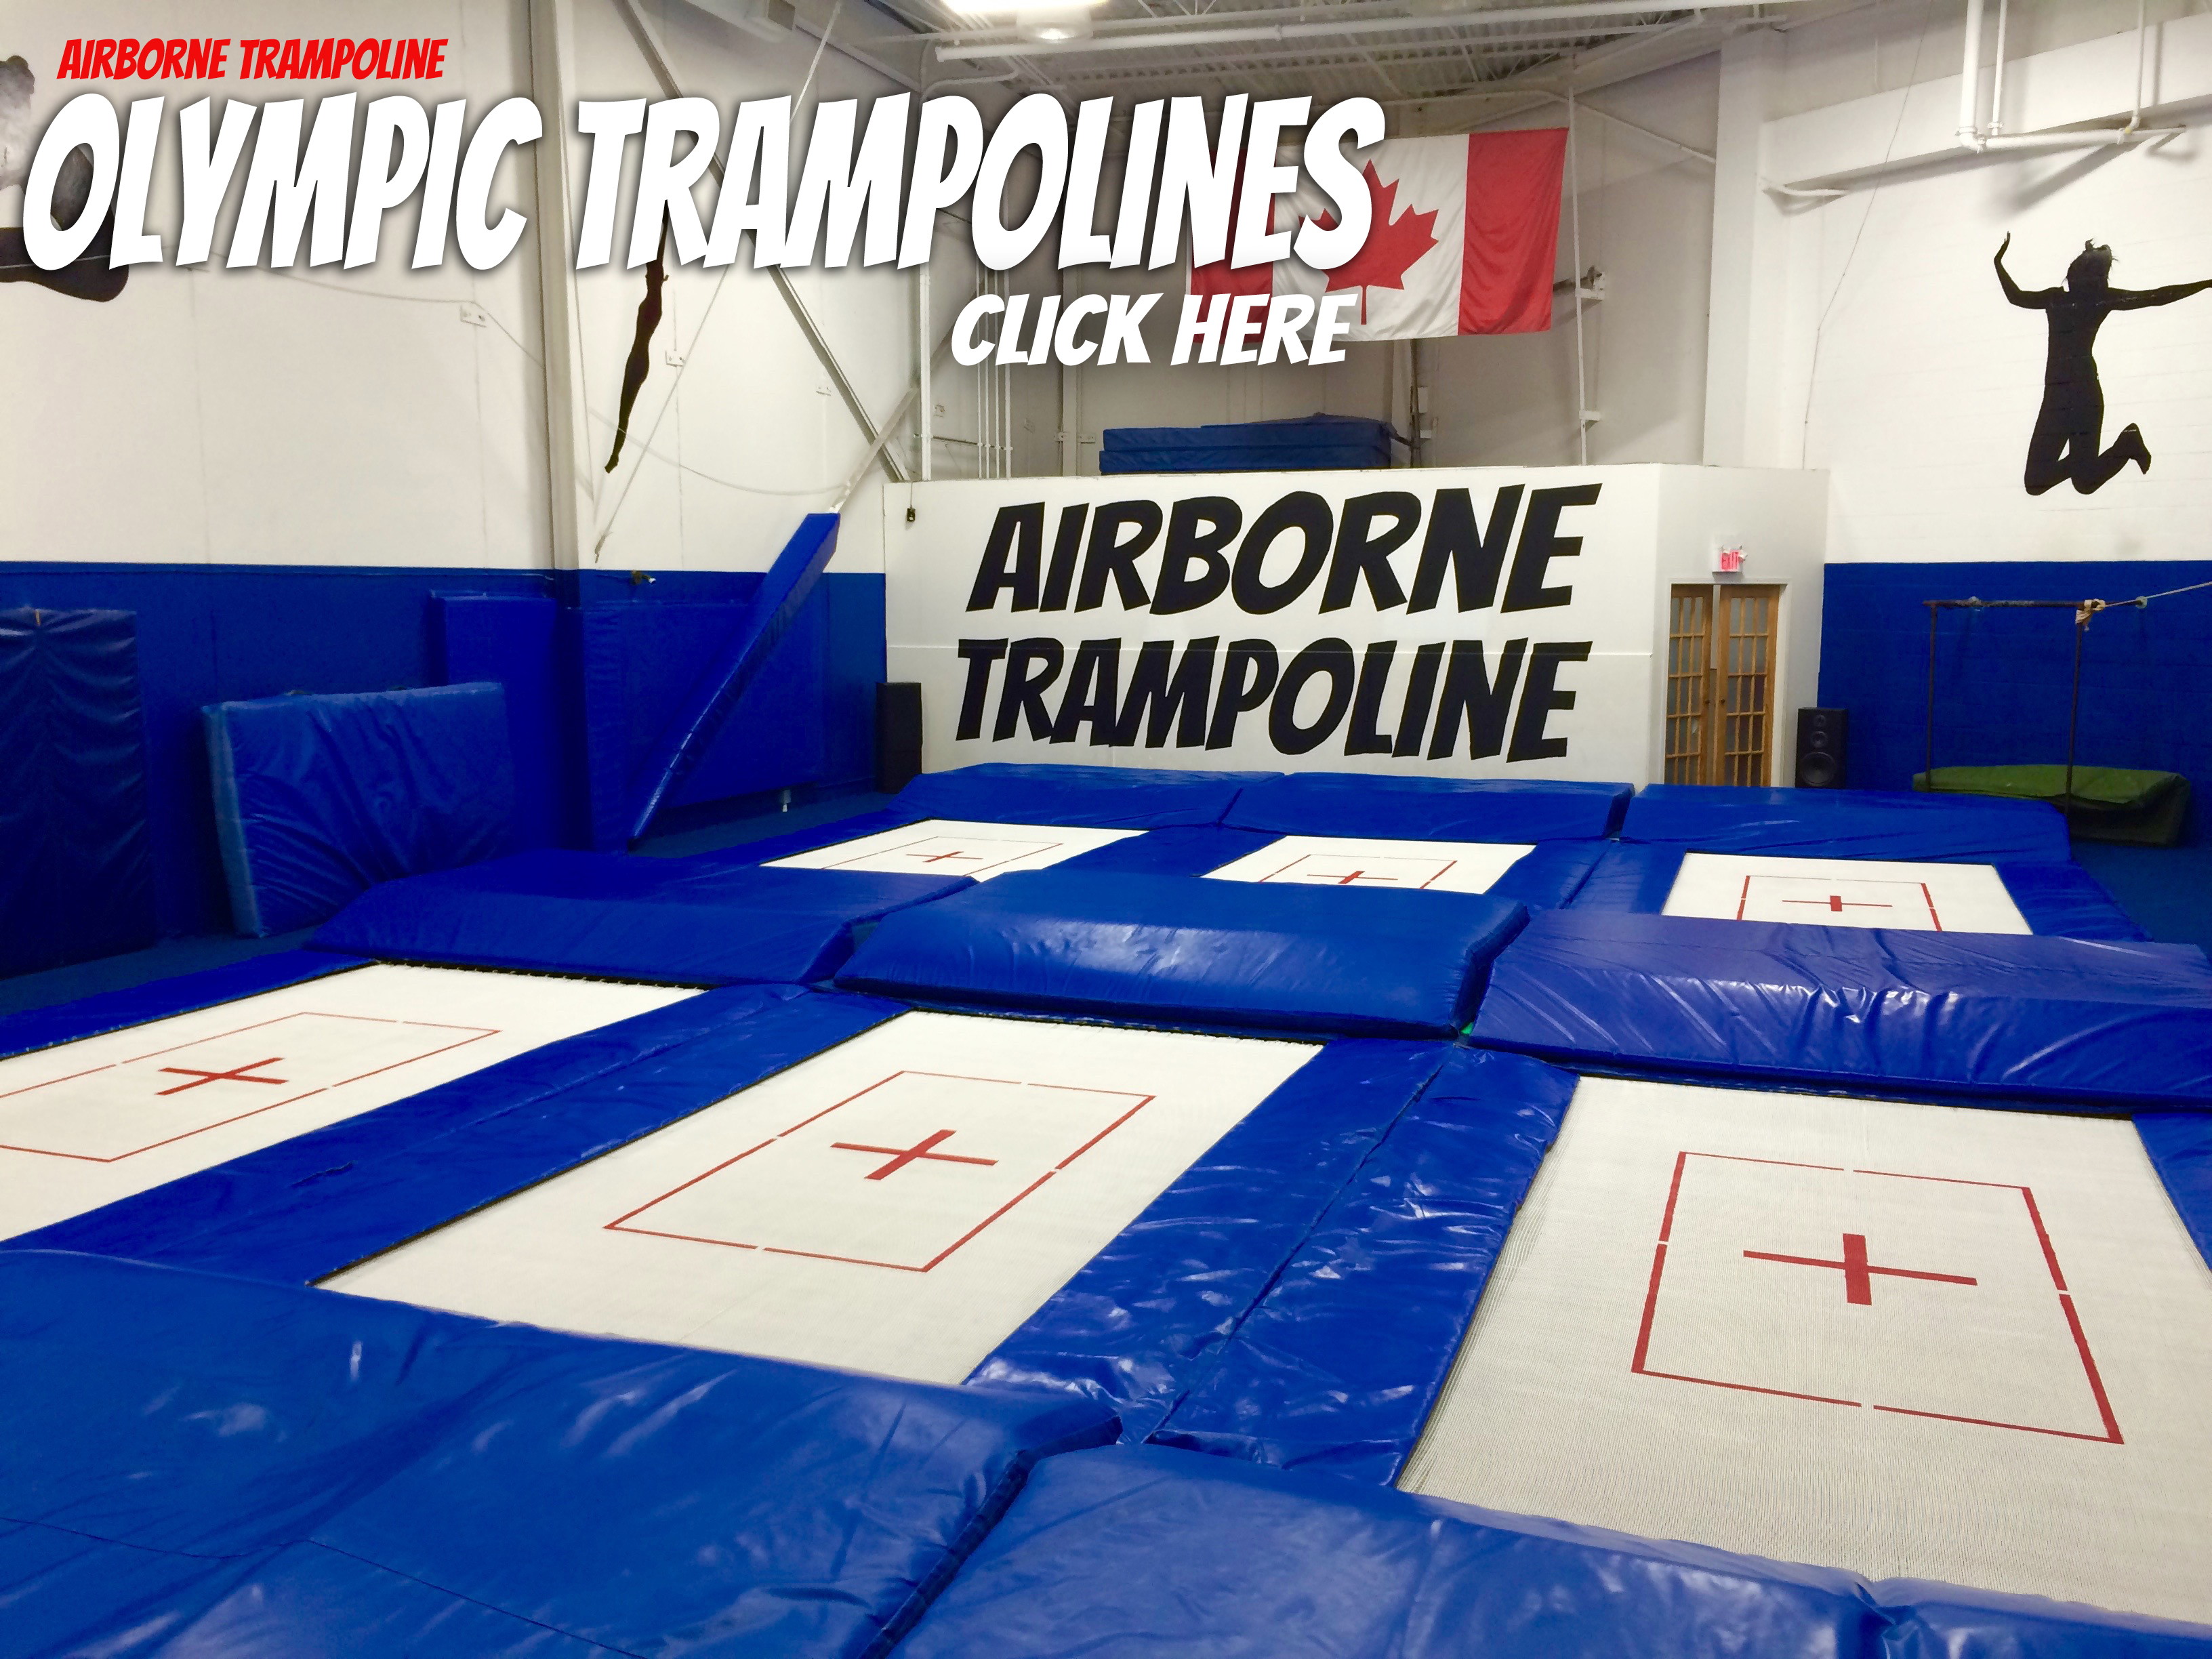 Olympic Group Trampoline Bookings